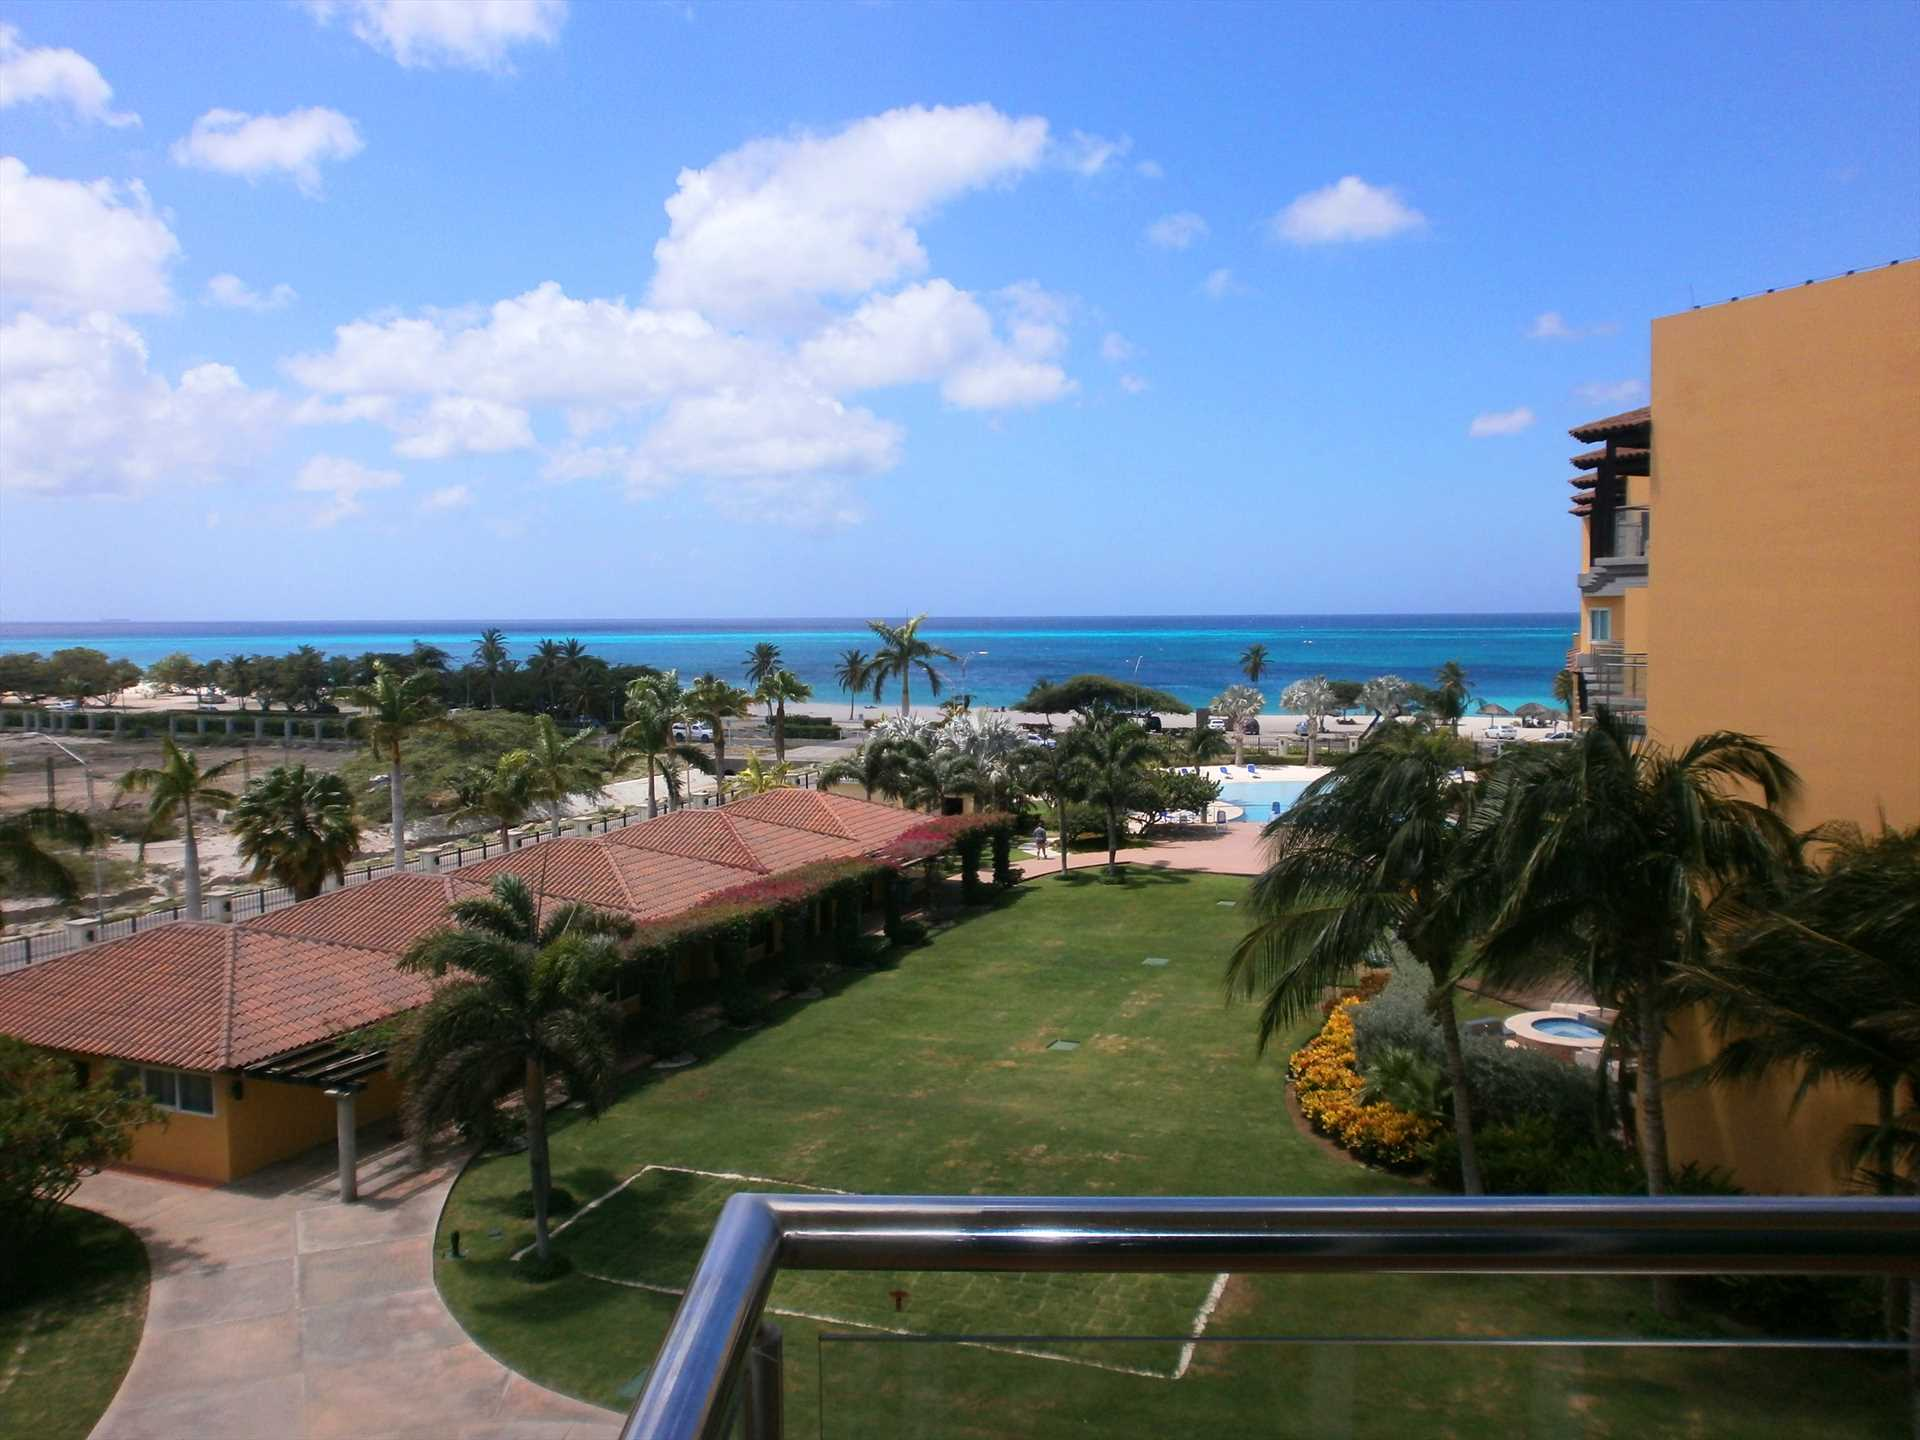 Your view from the balcony of the beach and resort pool